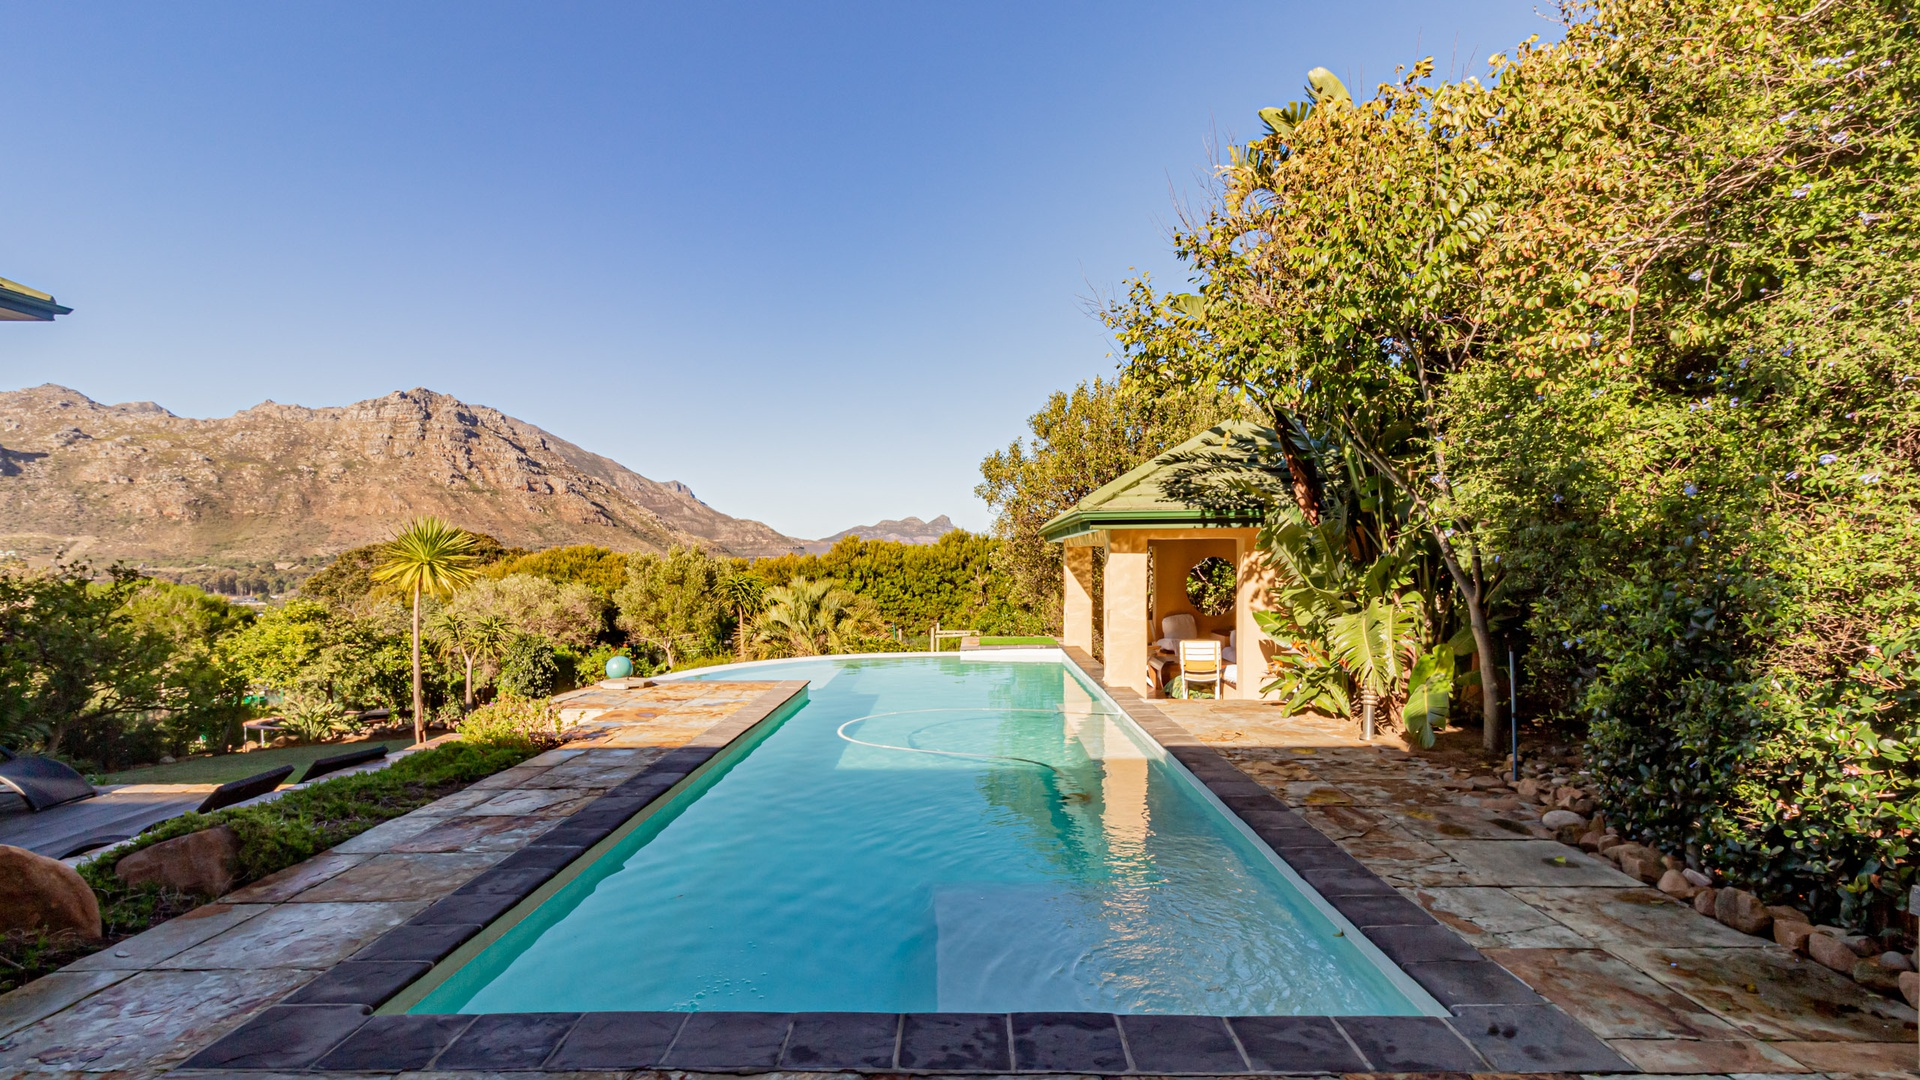 House in Hout Bay - Image-028.jpg